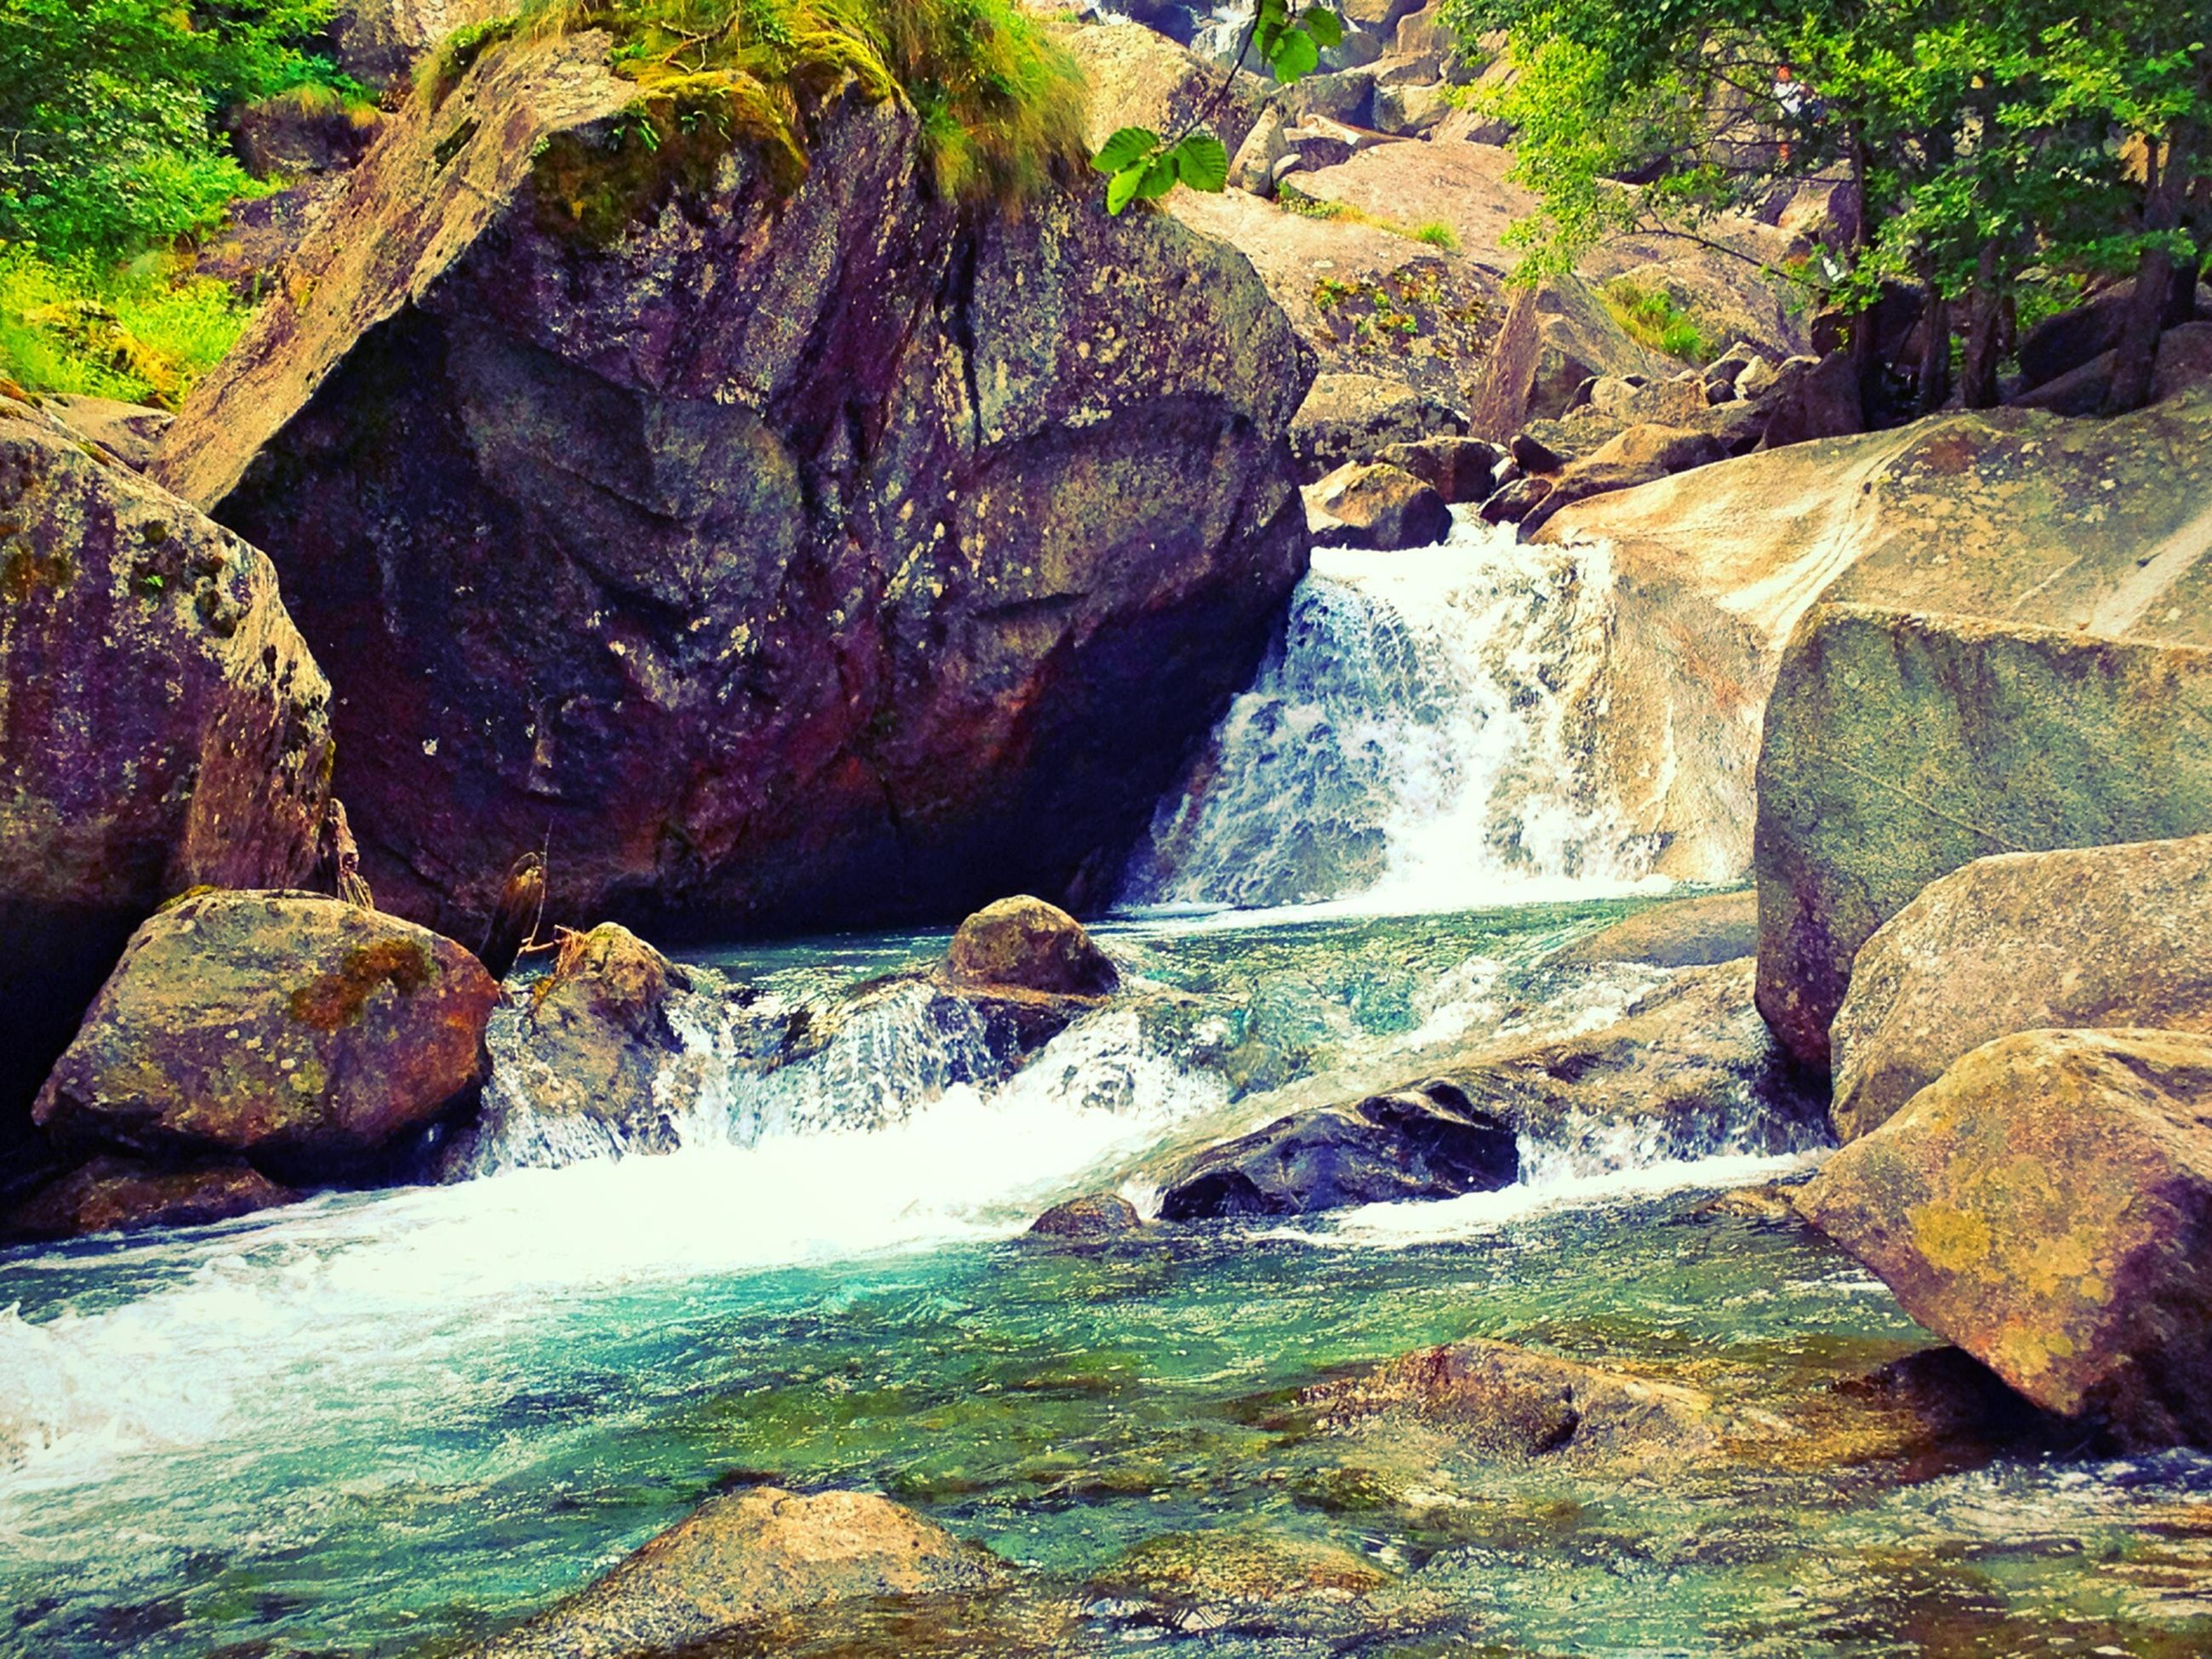 water, rock - object, waterfall, rock formation, flowing water, beauty in nature, flowing, nature, motion, scenics, rock, stream, river, long exposure, forest, tranquility, tree, tranquil scene, idyllic, day